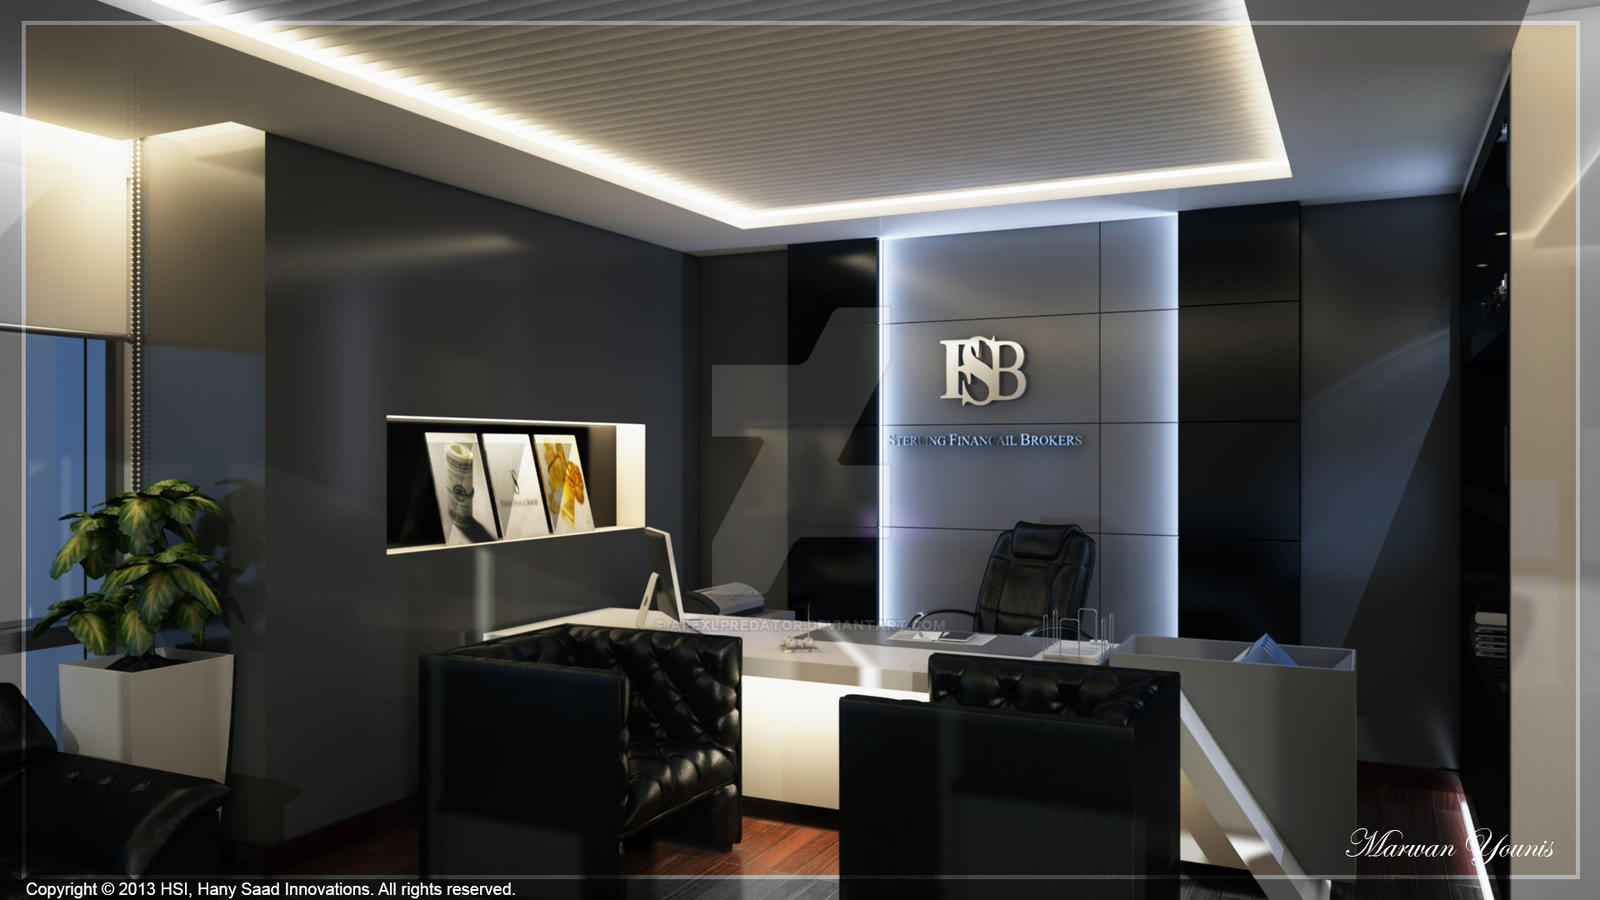 Ceo office 03 by apexlpredator on deviantart for Home interior design company